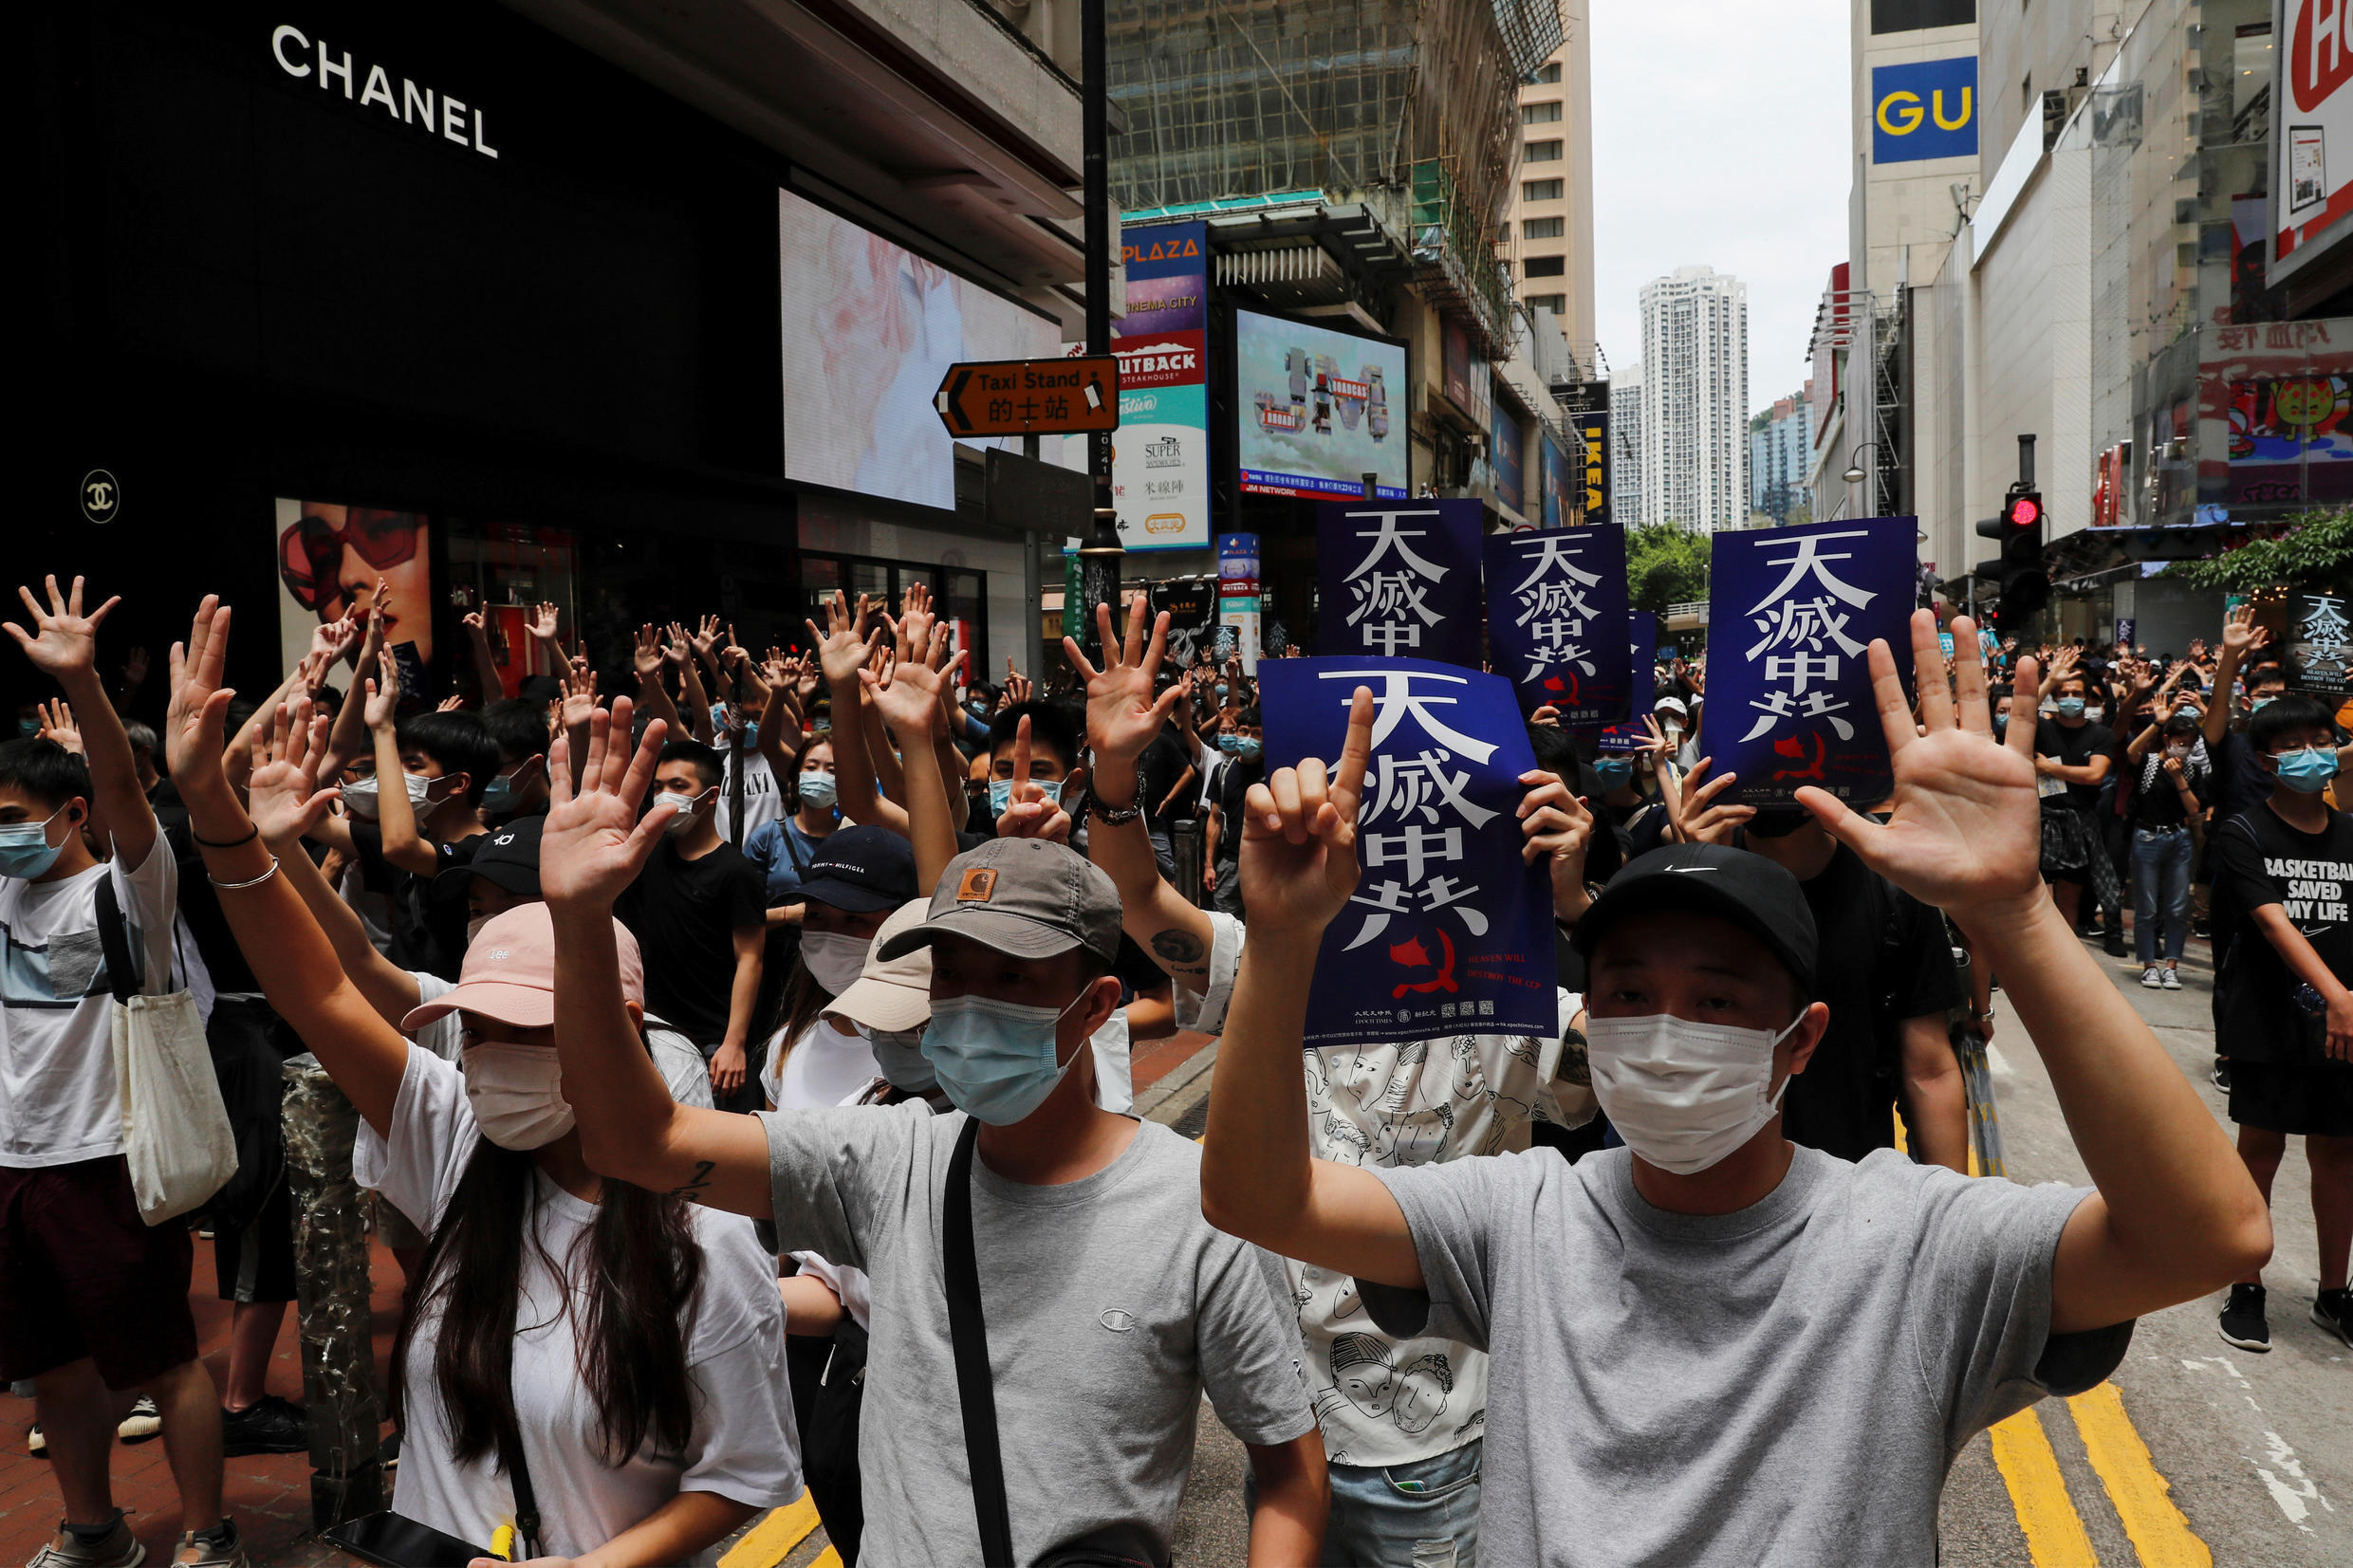 Anti-government protesters march again Beijing's plans to impose national security legislation in Hong Kong, May 24, 2020.